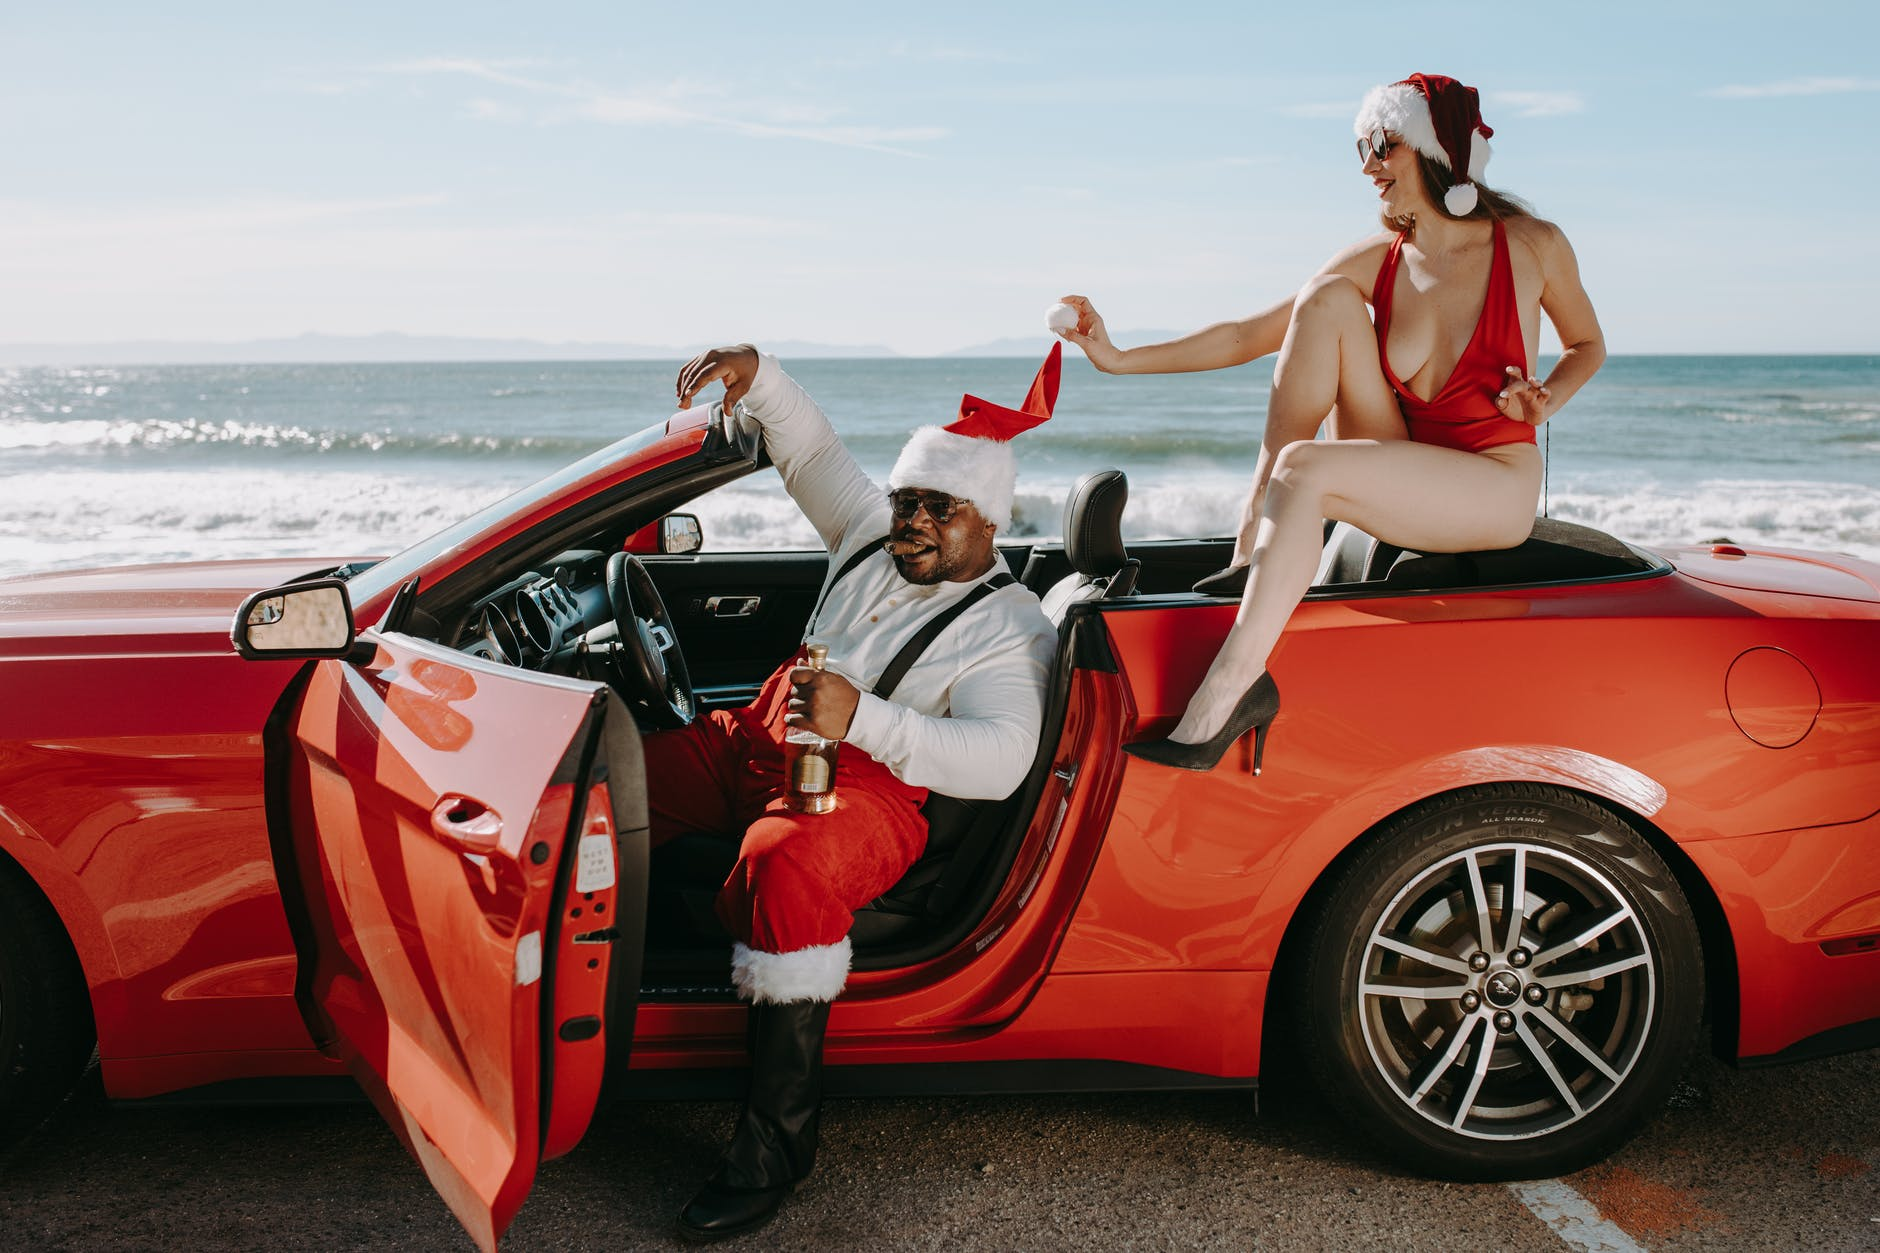 man and woman in santa outfits sitting in a red convertible car